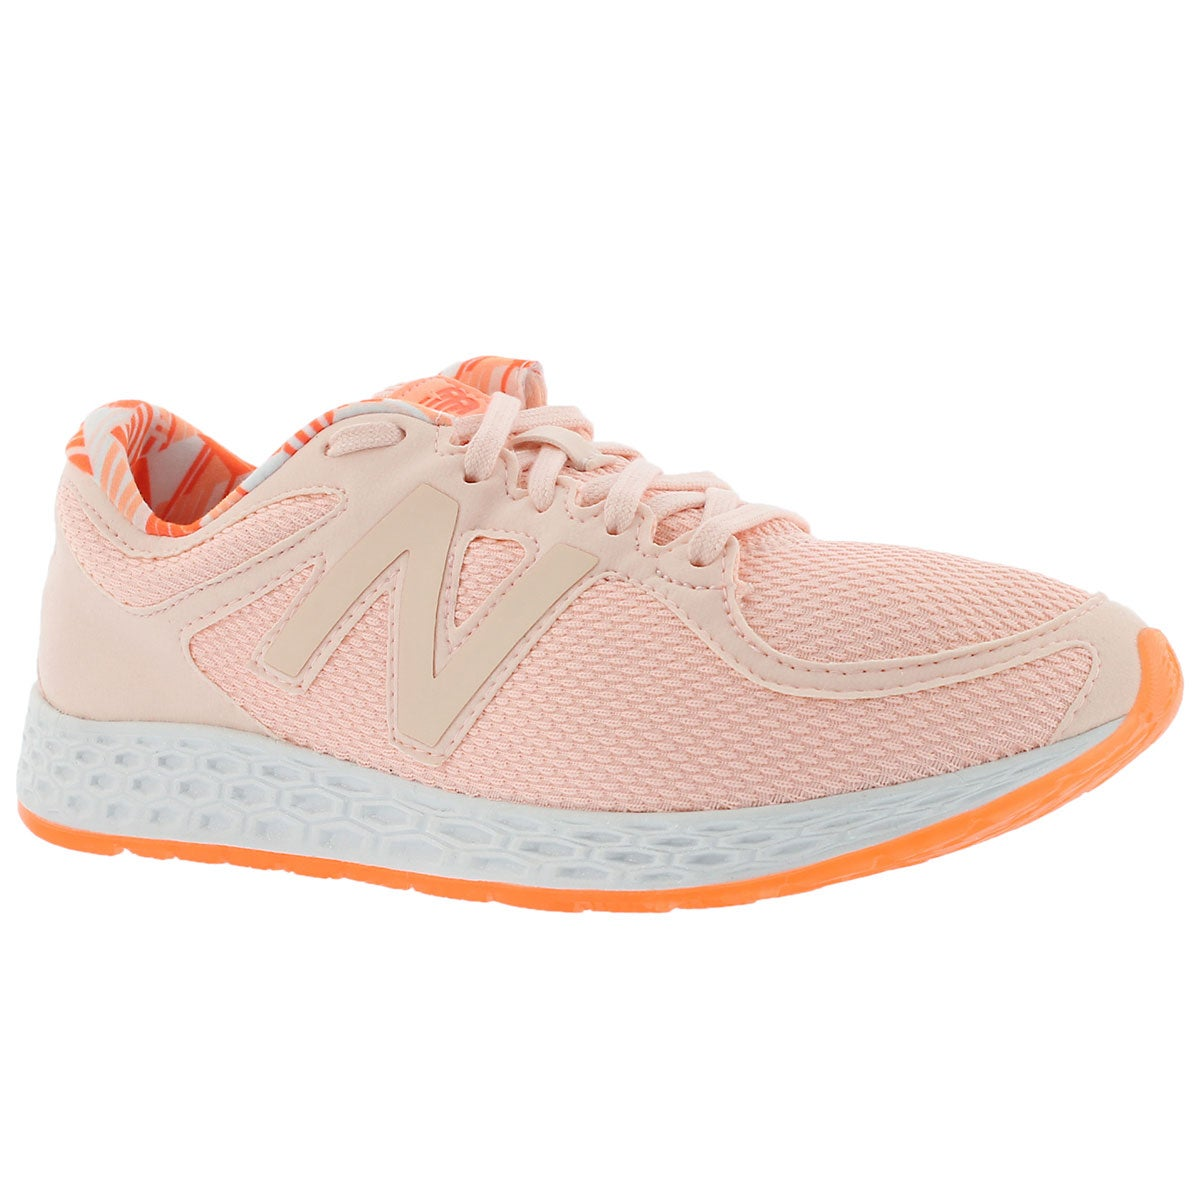 Women's ZAN sunrise glow lace up sneakers